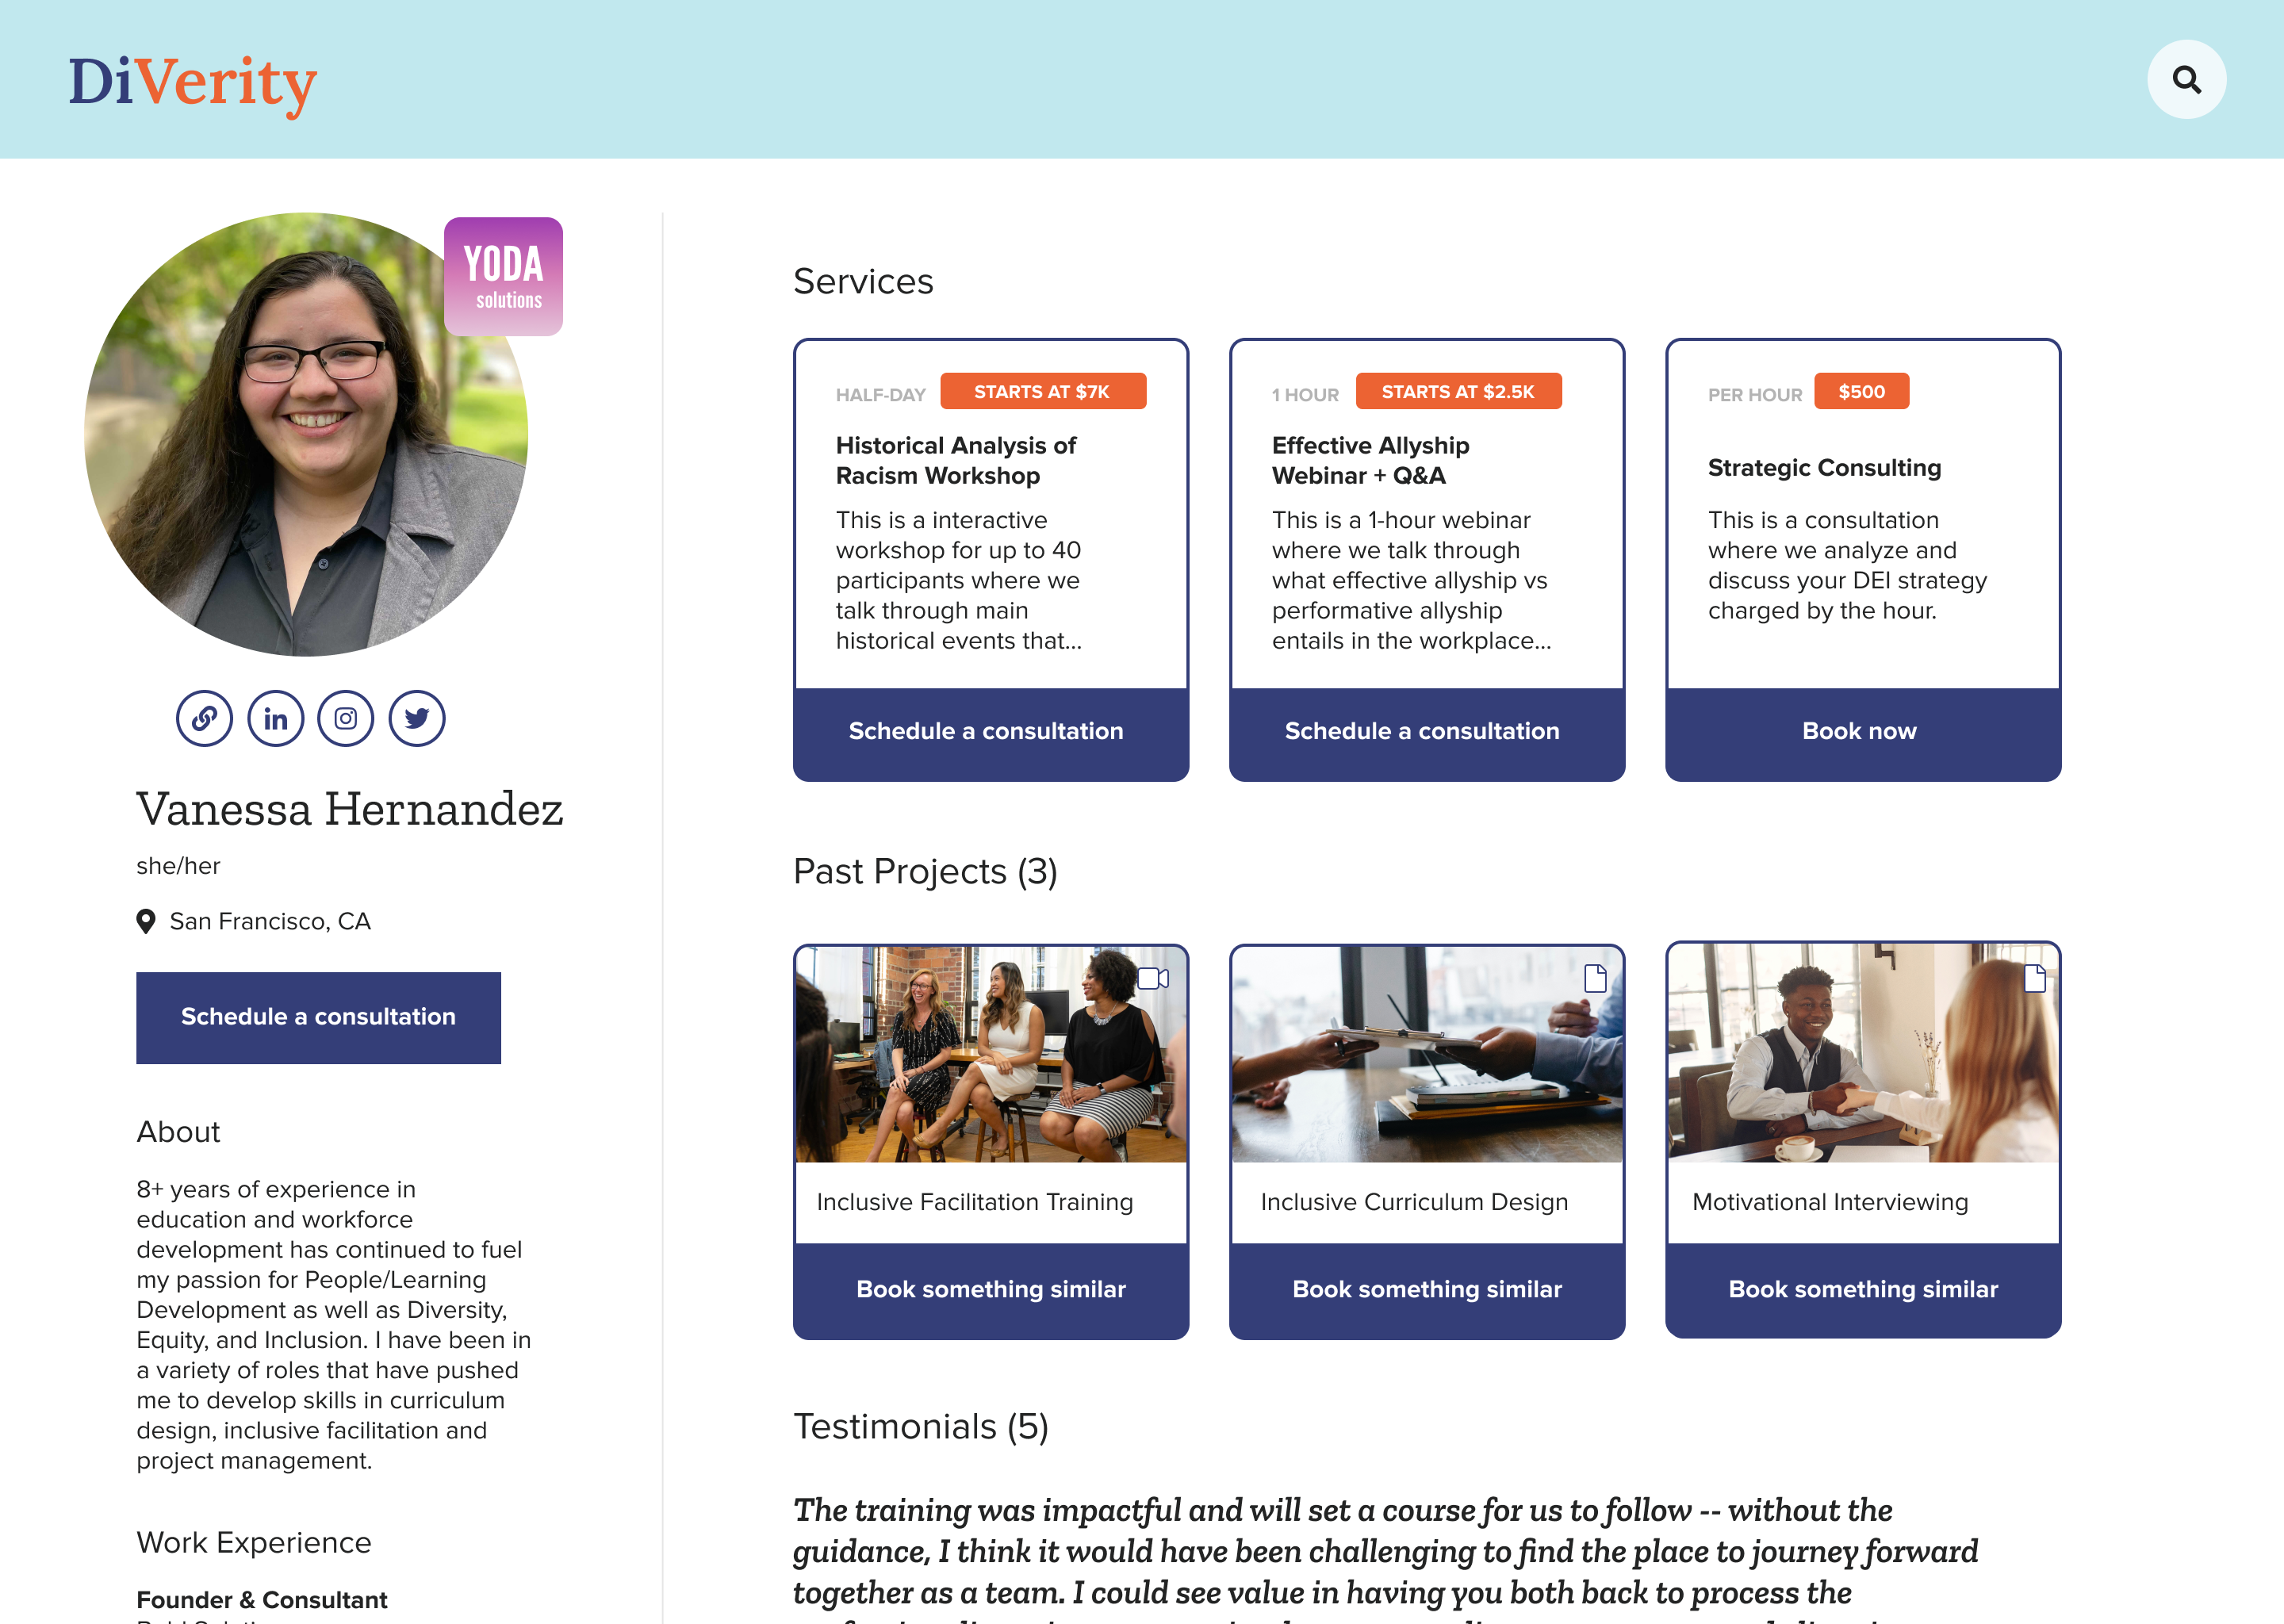 An image of a profile page showing services, past projects, and testimonials